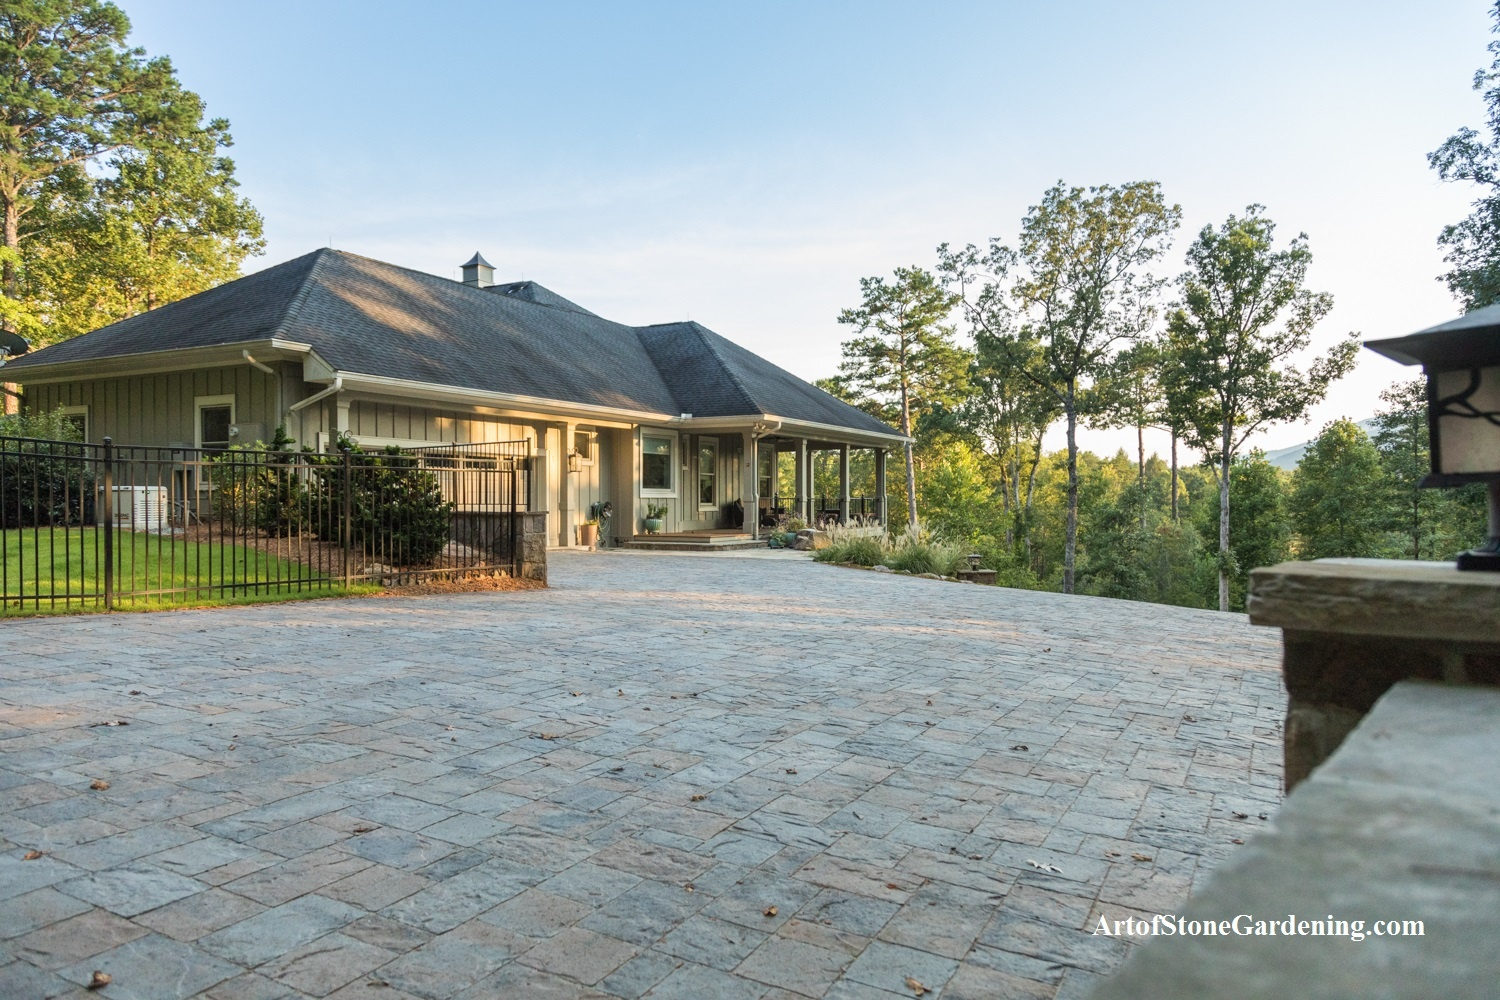 Belgard paver driveway and entrance to Sautee Nacoochee home